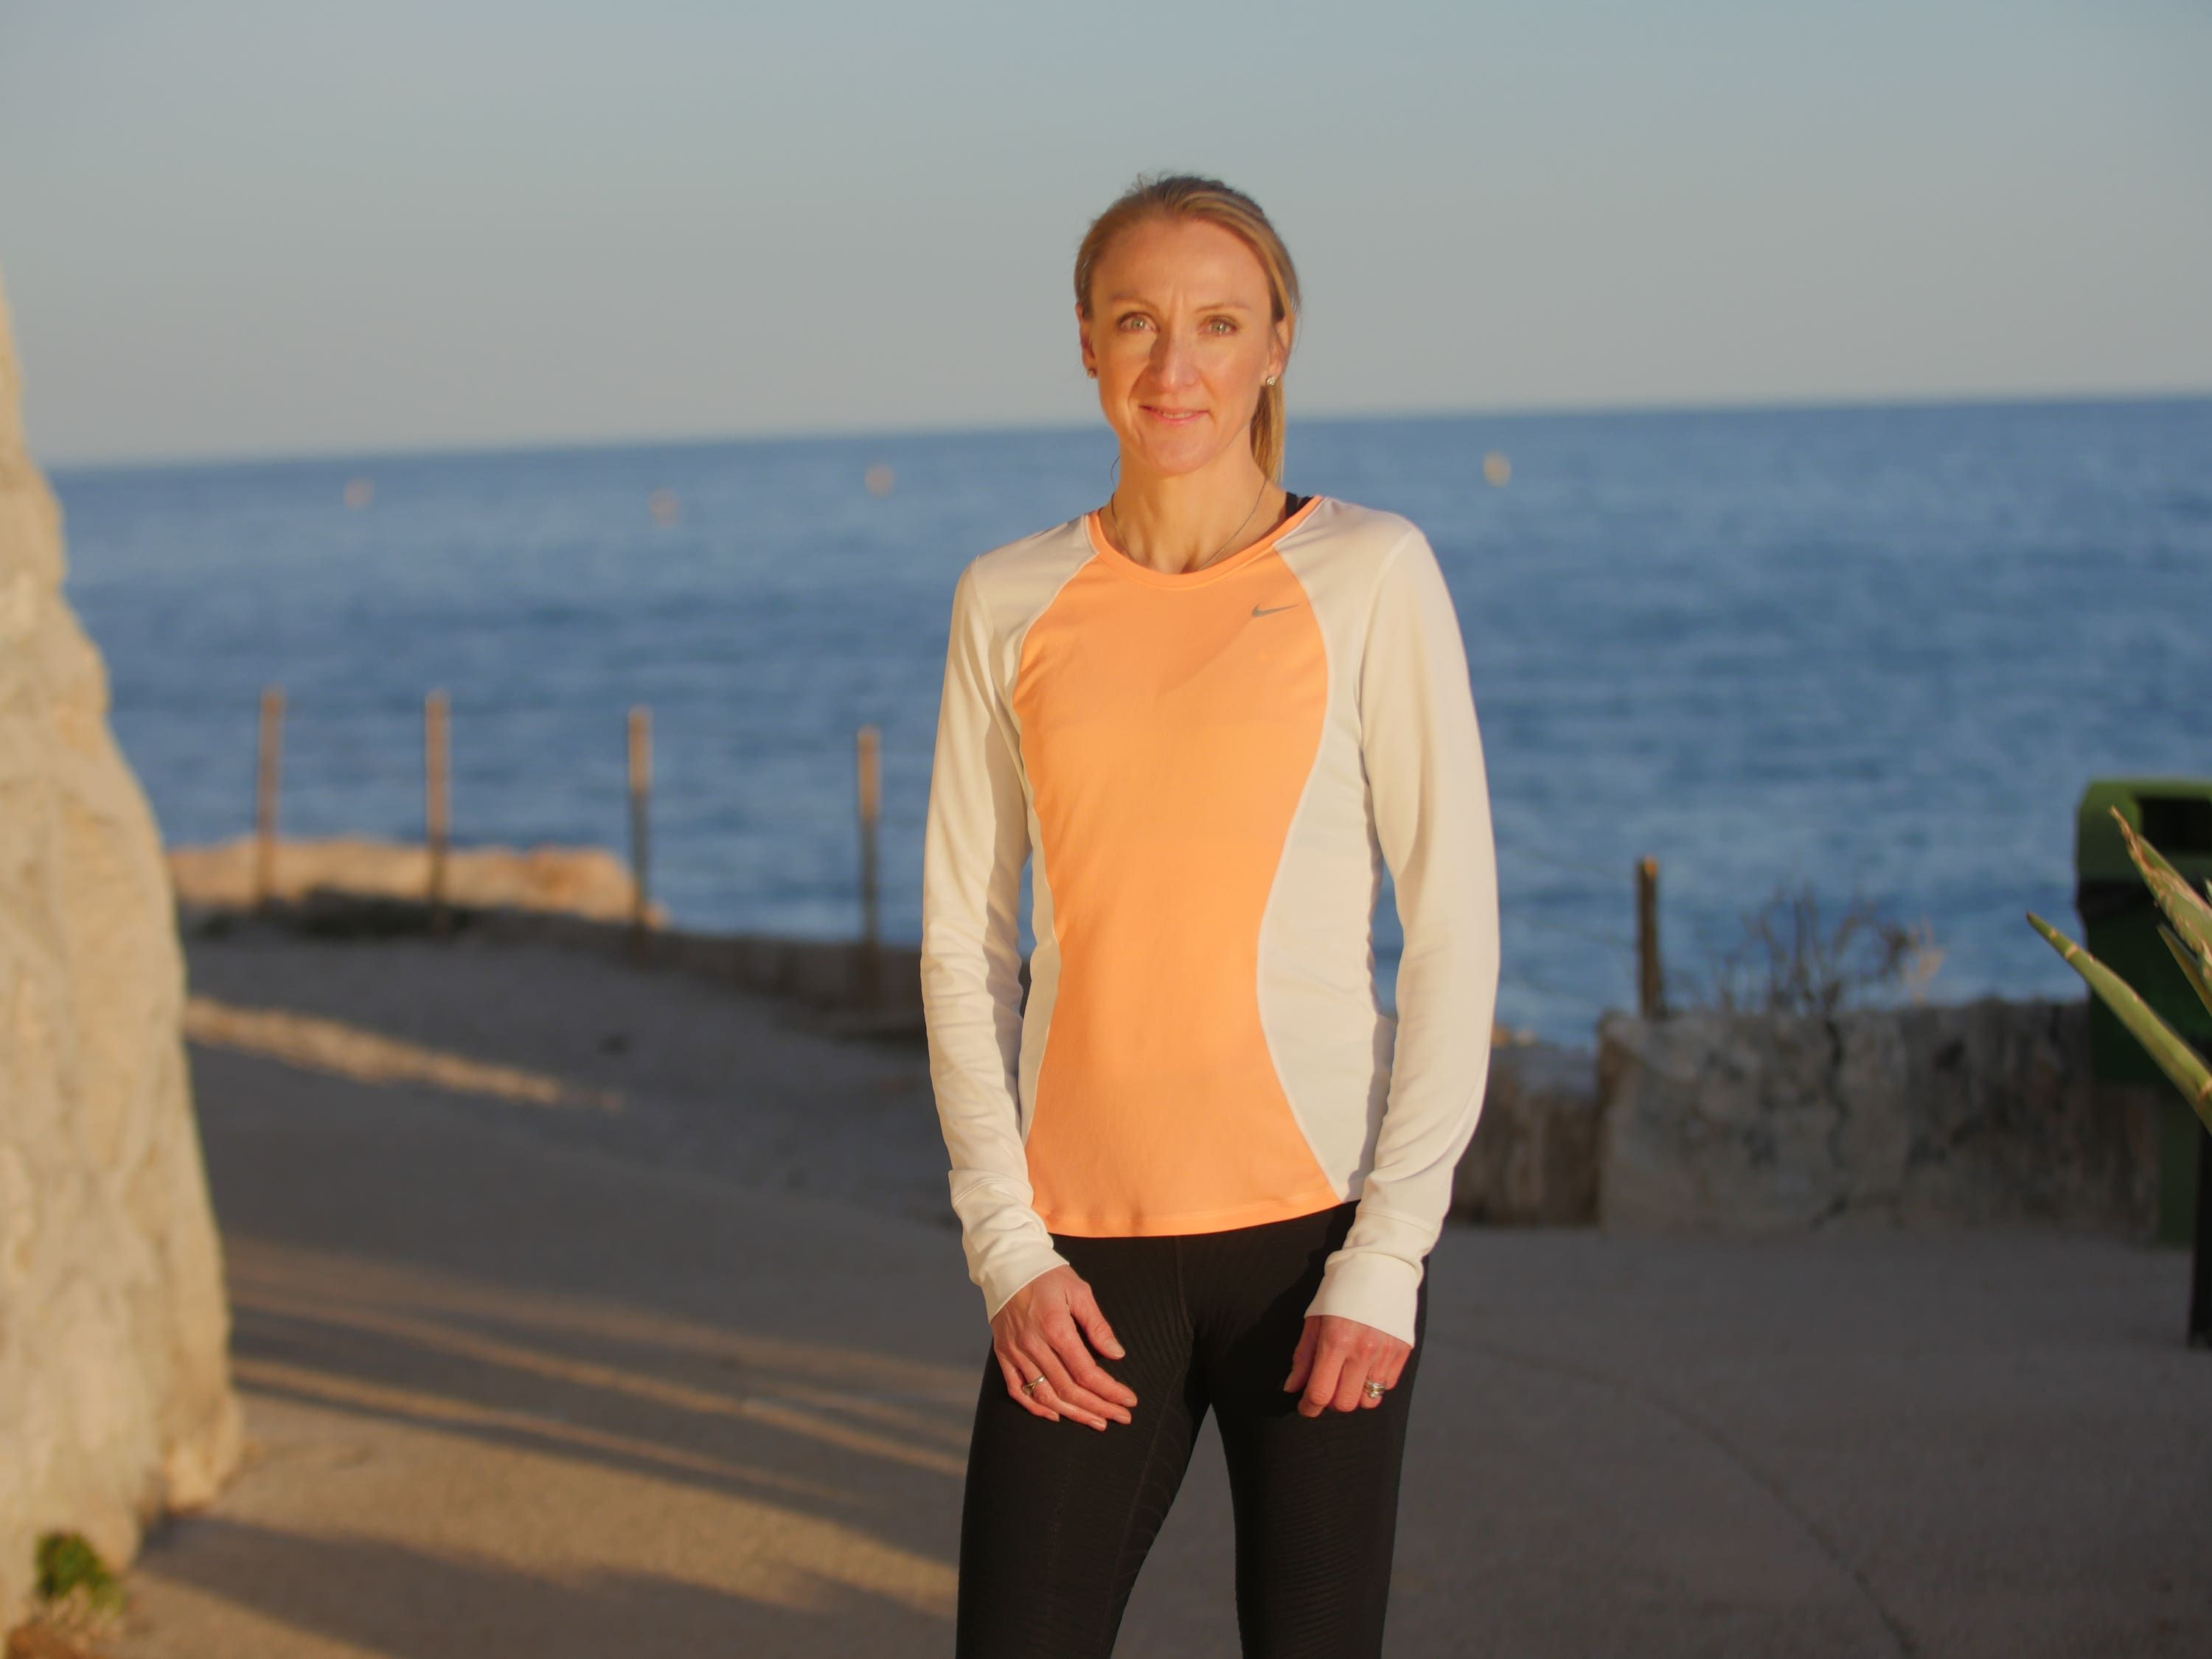 Keen to keep up your running regime this winter? Paula Radcliffe shares some top tips